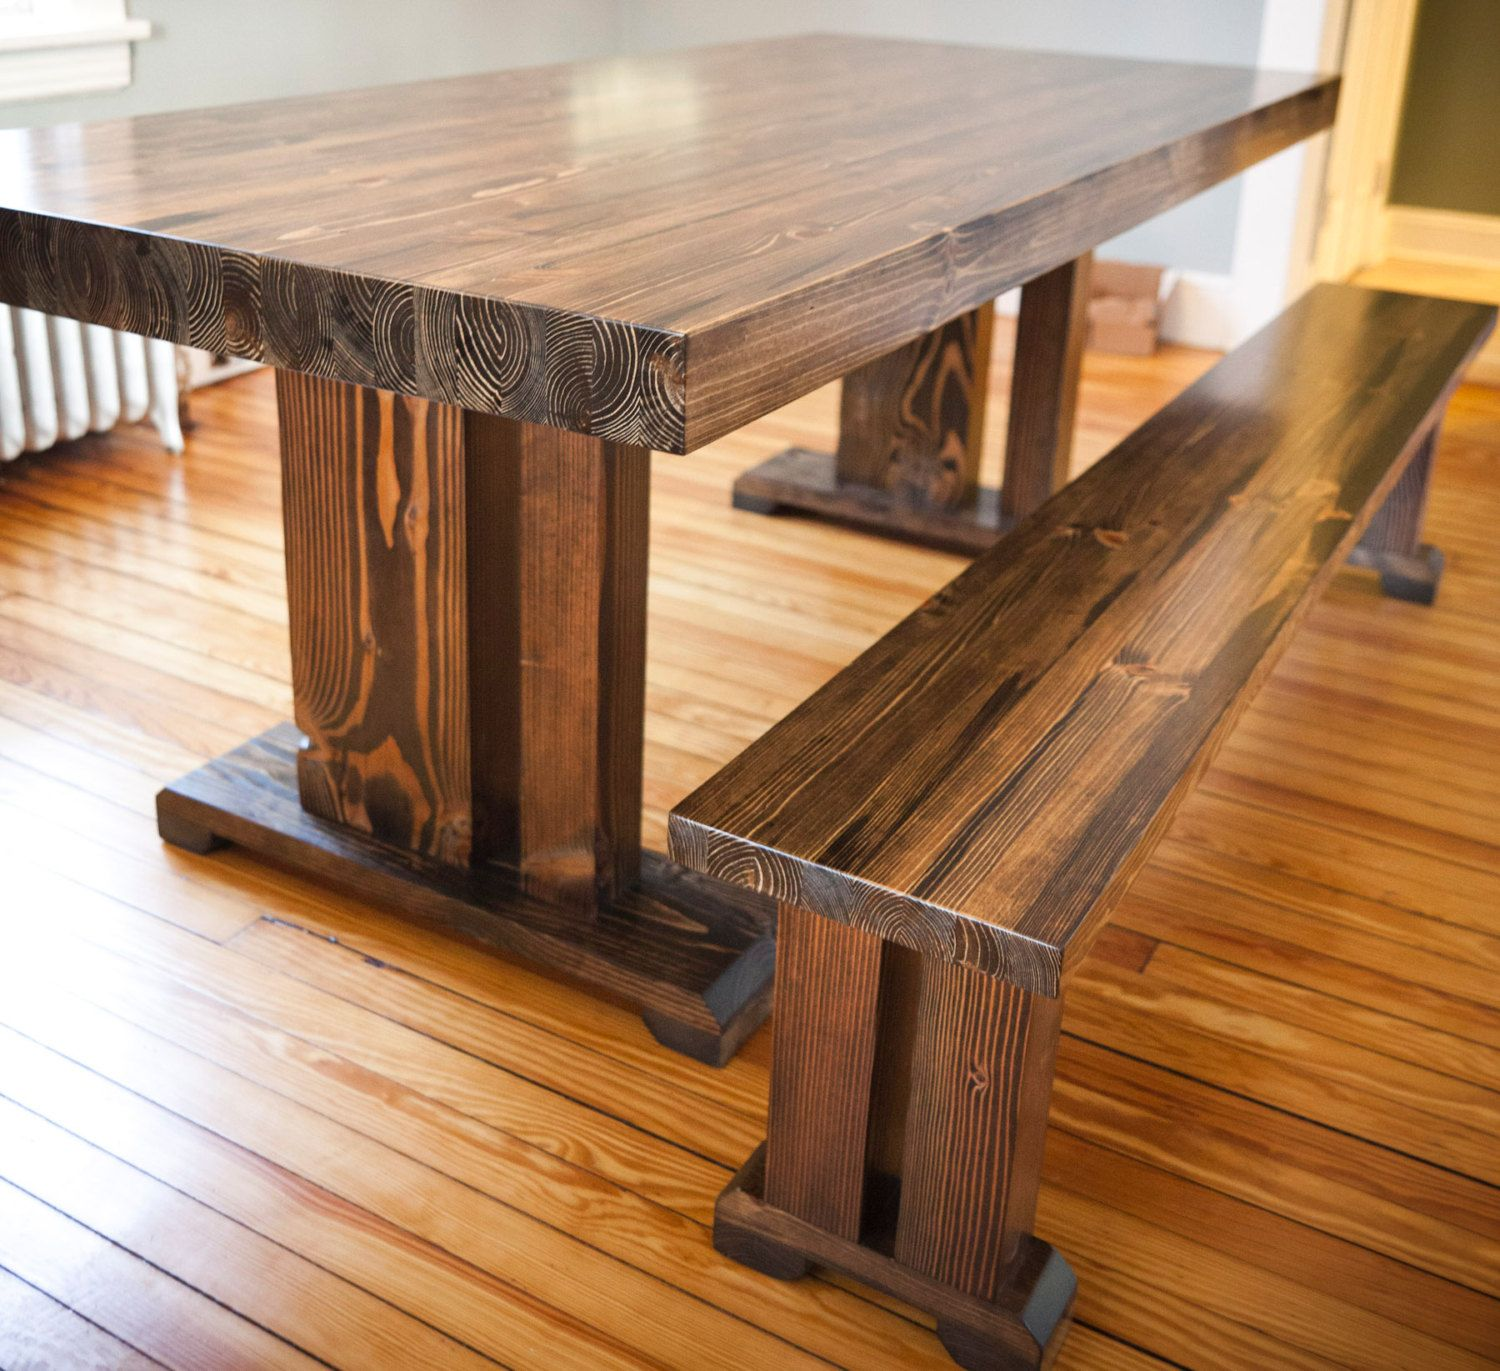 Farm Style Wood Dining Table With Well Made Solid Butcher Block